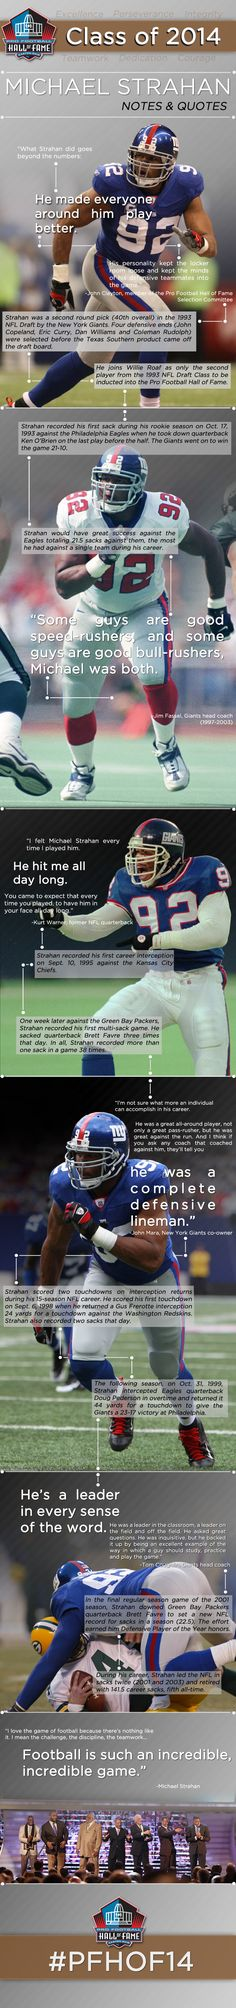 Infographic  Notes  amp  Quotes from Michael Strahan s Pro Football Hall  of Fame career ec90ddb44